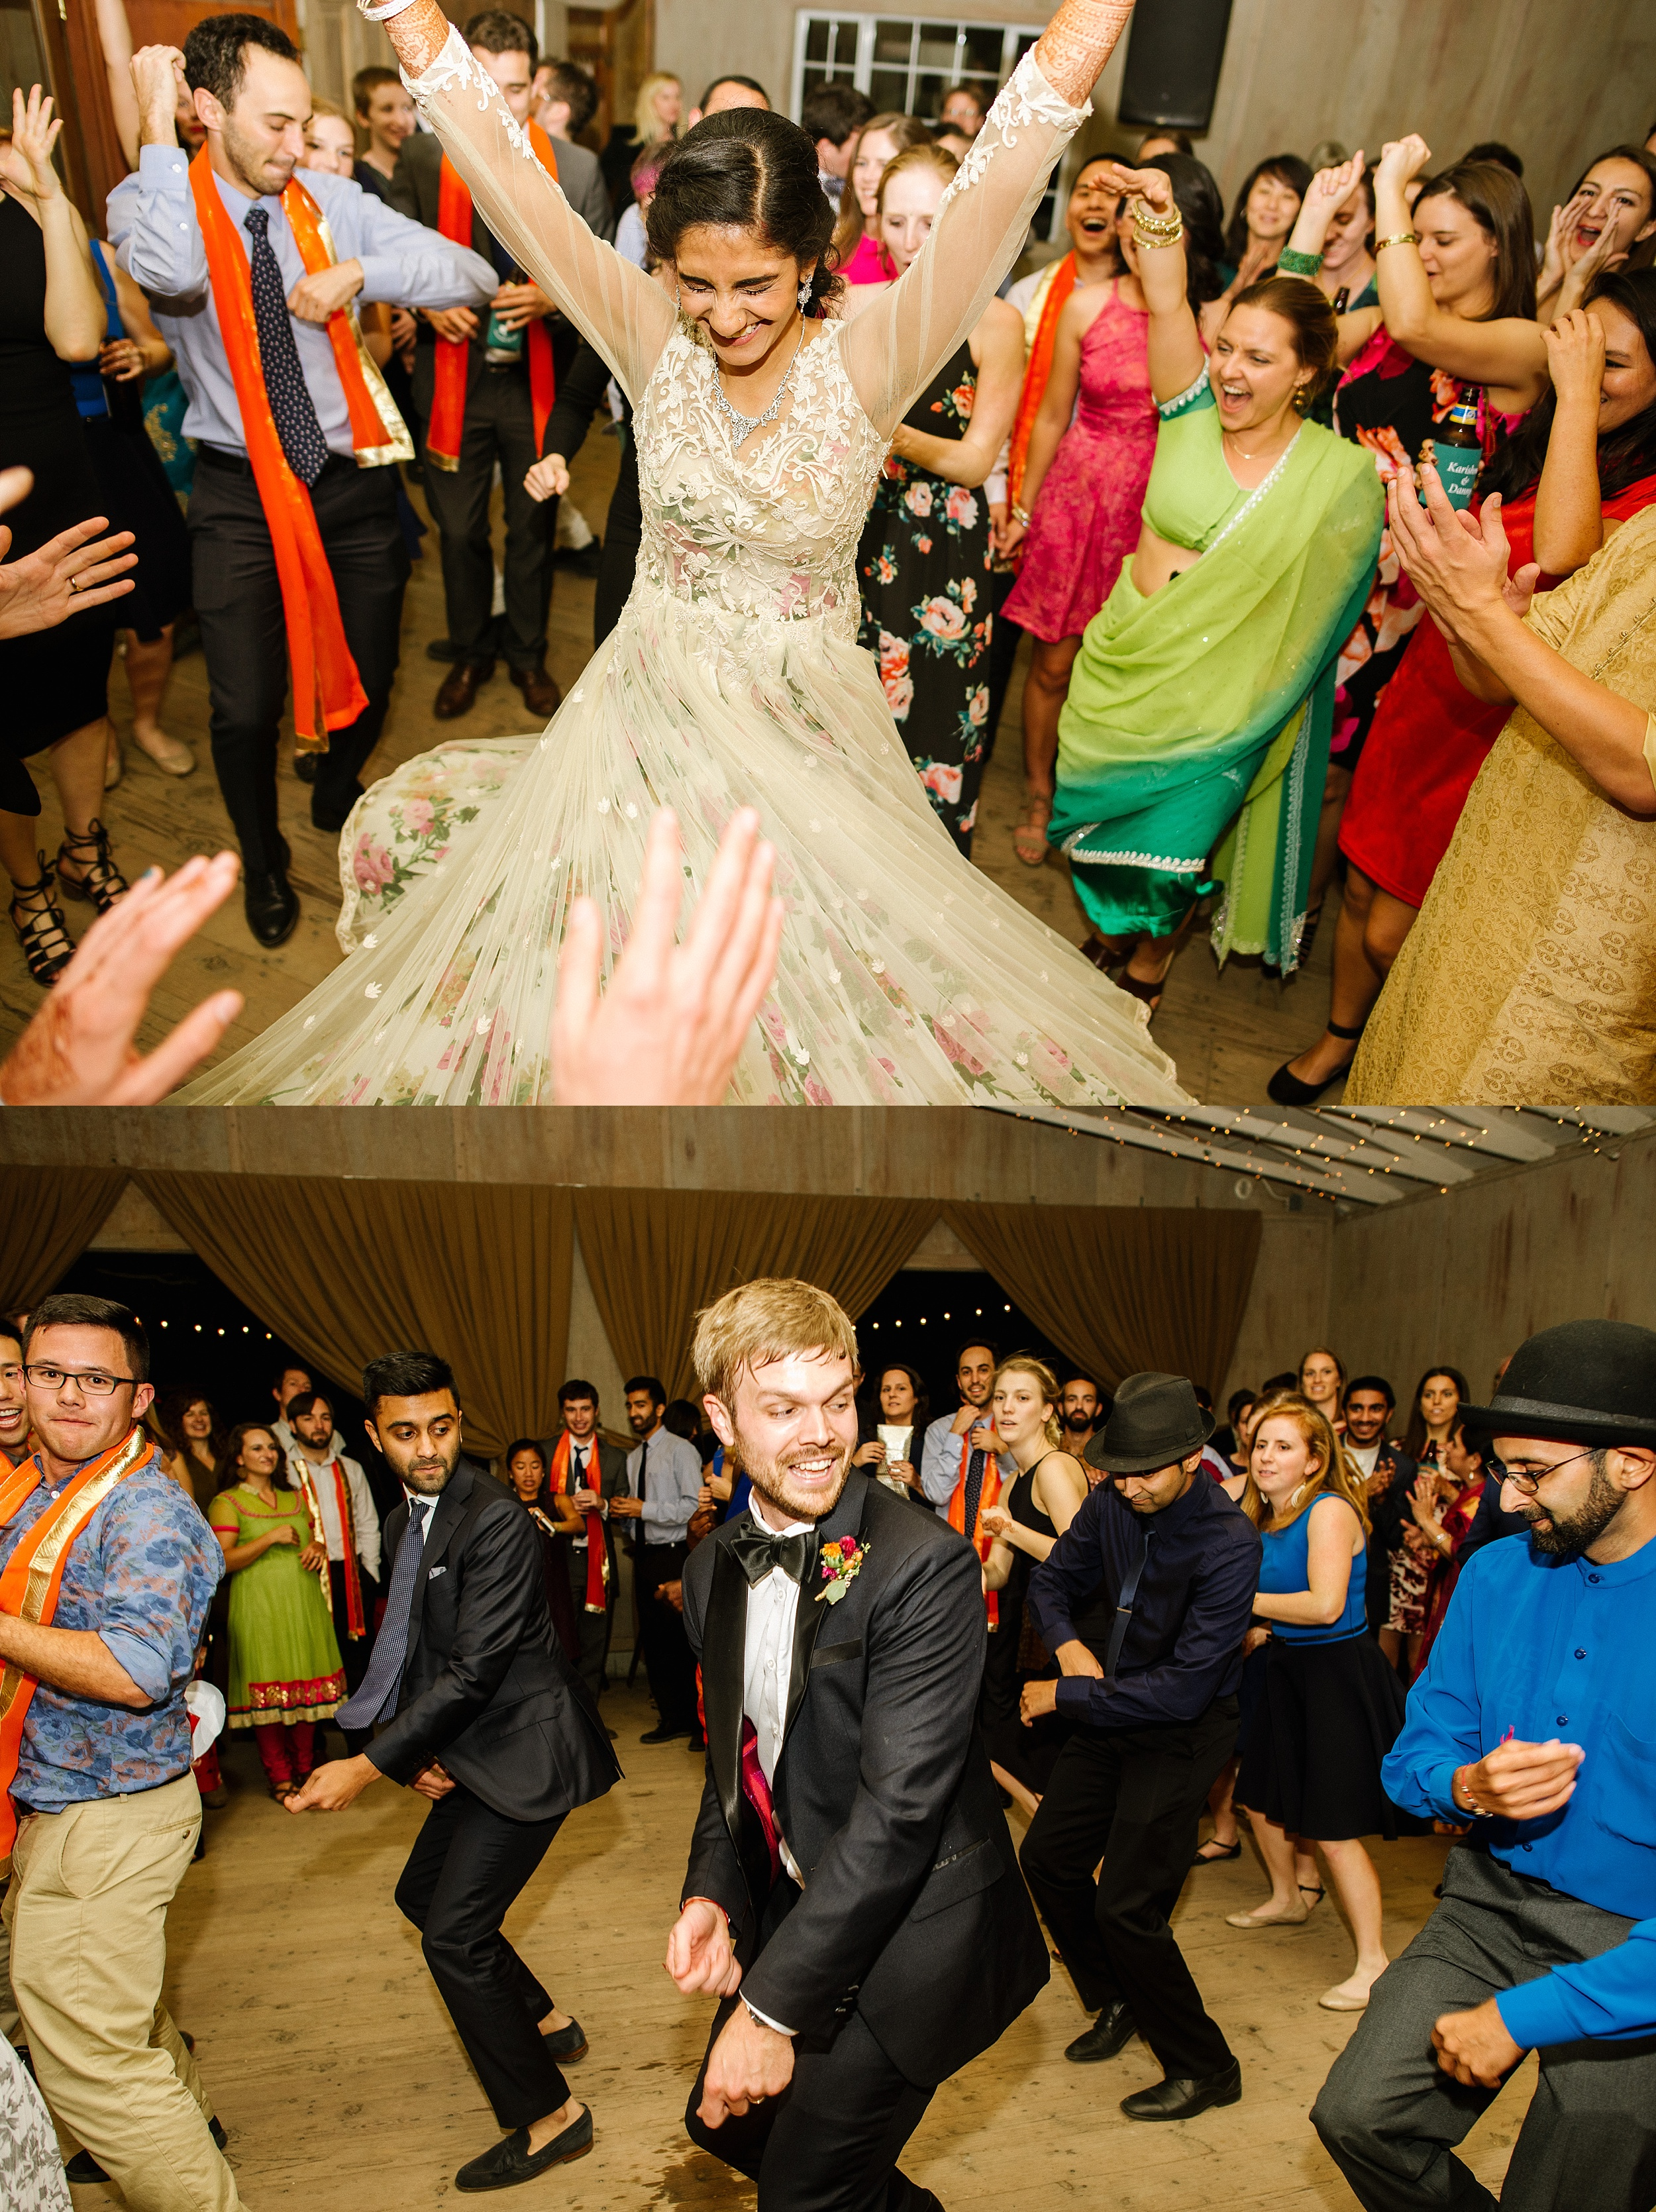 holman_ranch_wedding_cdp_karishma_danny_0029.jpg